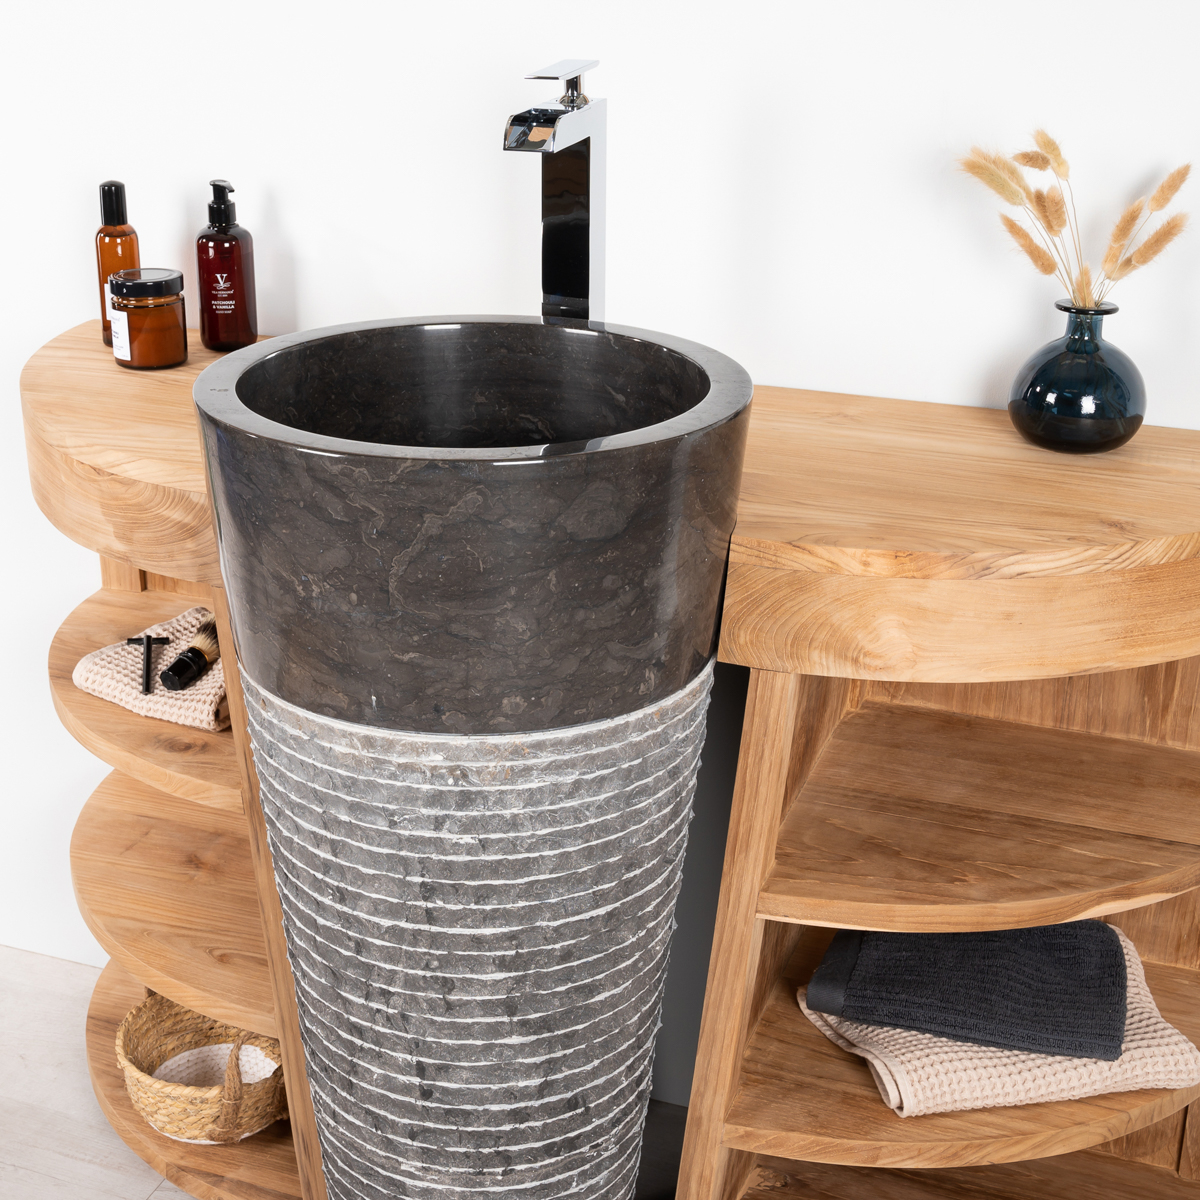 meuble sous vasque simple vasque en bois teck massif vasque en marbre florence. Black Bedroom Furniture Sets. Home Design Ideas